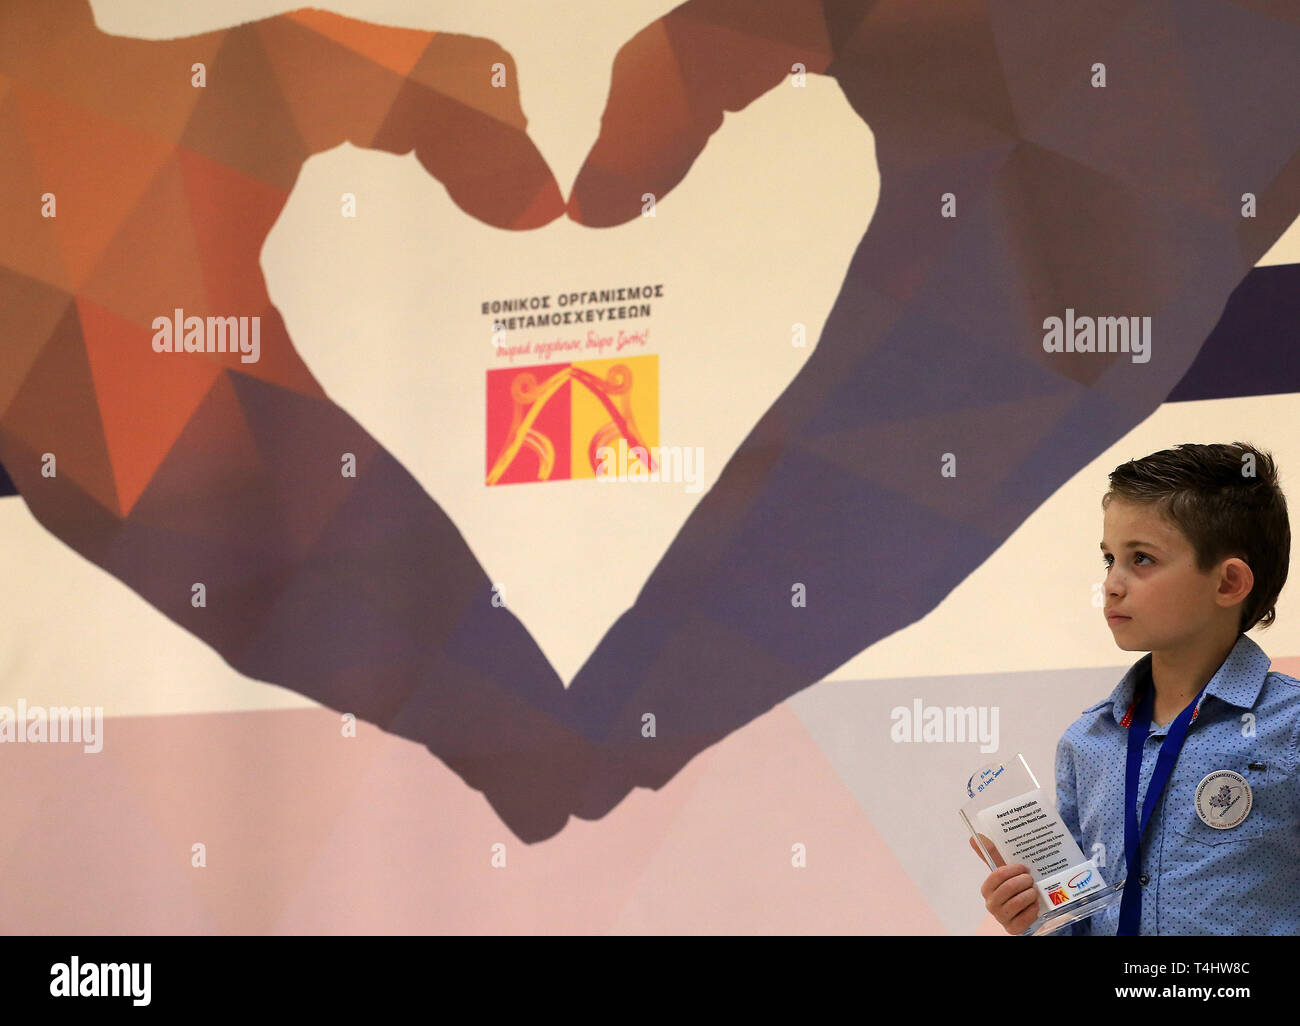 Athens, Greece. 15th Apr, 2019. A boy attends the Hellenic Transplant Organization's social awareness event in Athens, Greece, on April 15, 2019. Greece aims to double the rate of human organ donations for transplants within the next two years, the President of the Hellenic Transplant Organization (EOM), Andreas Karabinis, told Xinhua on Monday. Credit: Marios Lolos/Xinhua/Alamy Live News - Stock Image